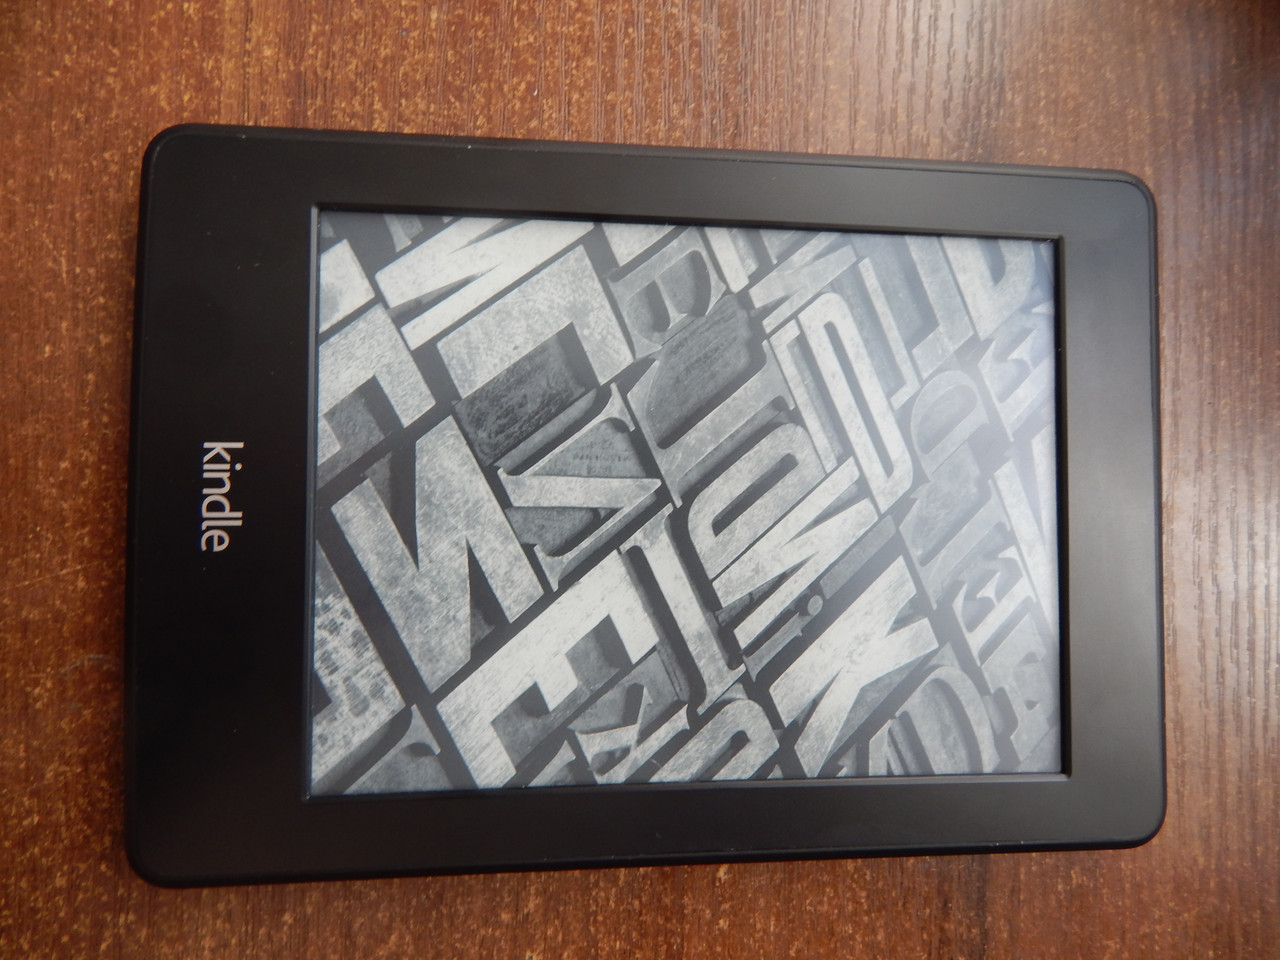 Электронная книга Amazon Kindle Paperwhite 2013  DP75SDI 2nd